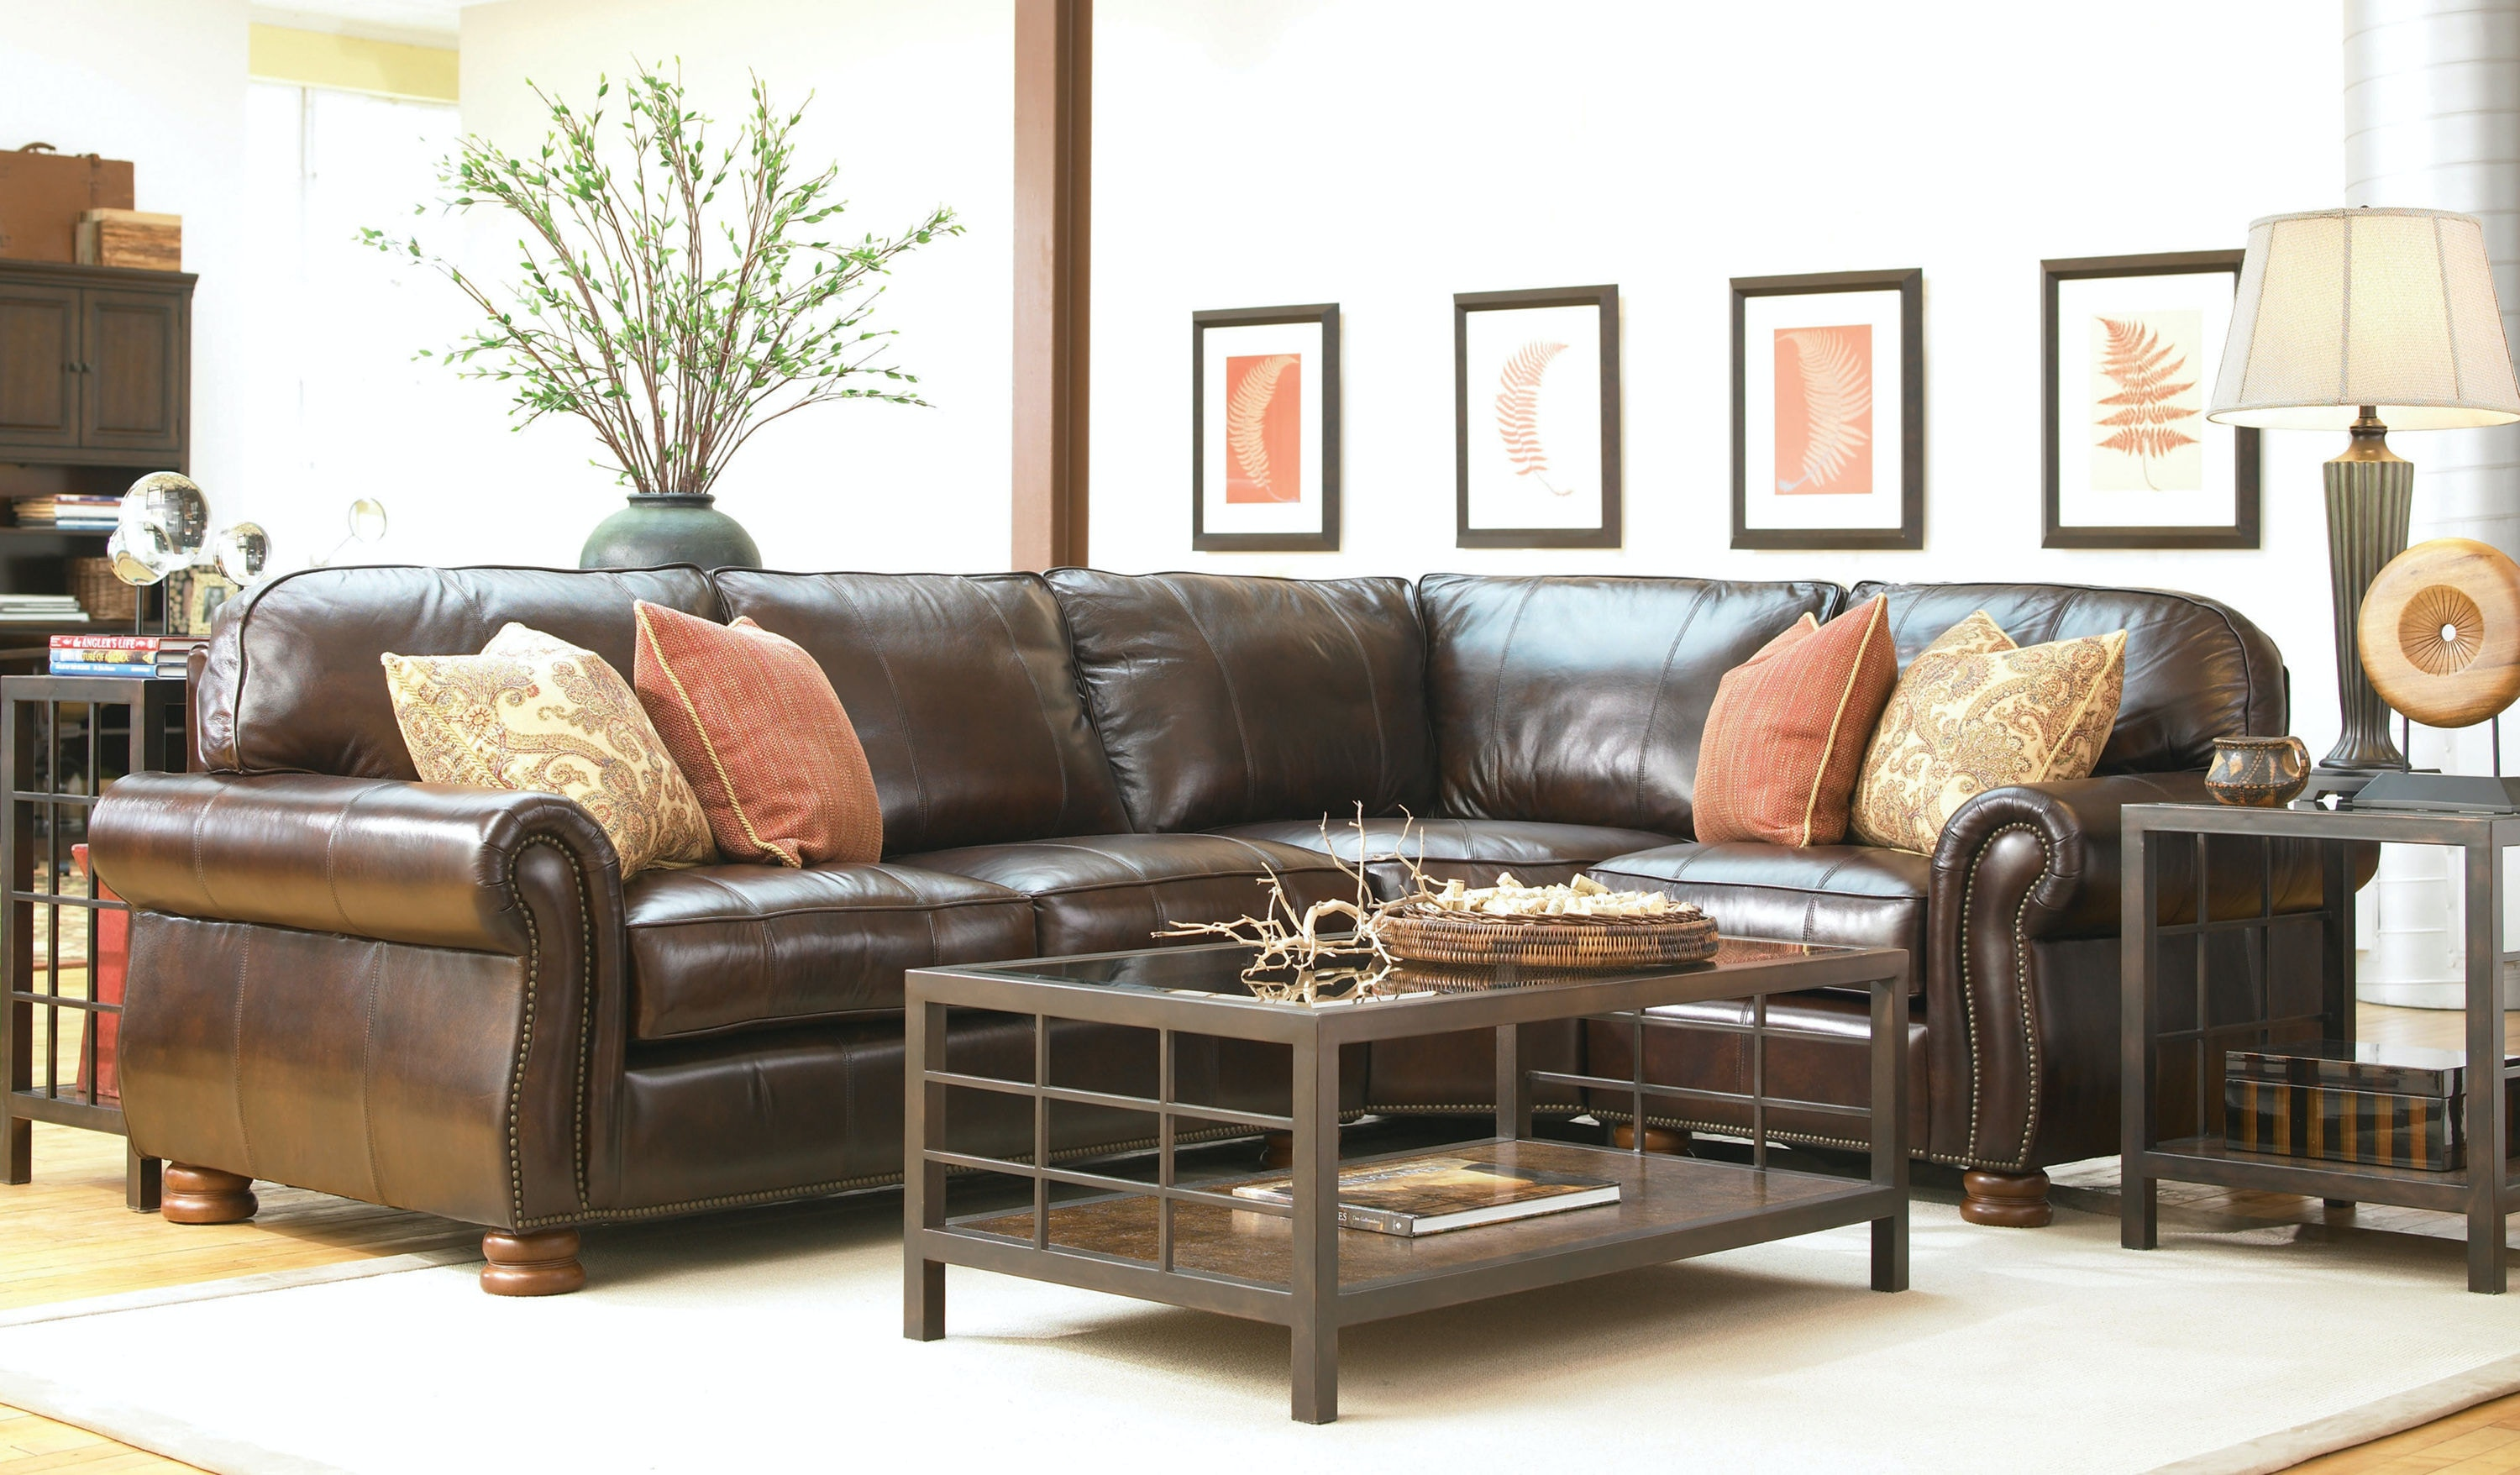 Benjamin 3 Piece Leather Sectional KT:42960